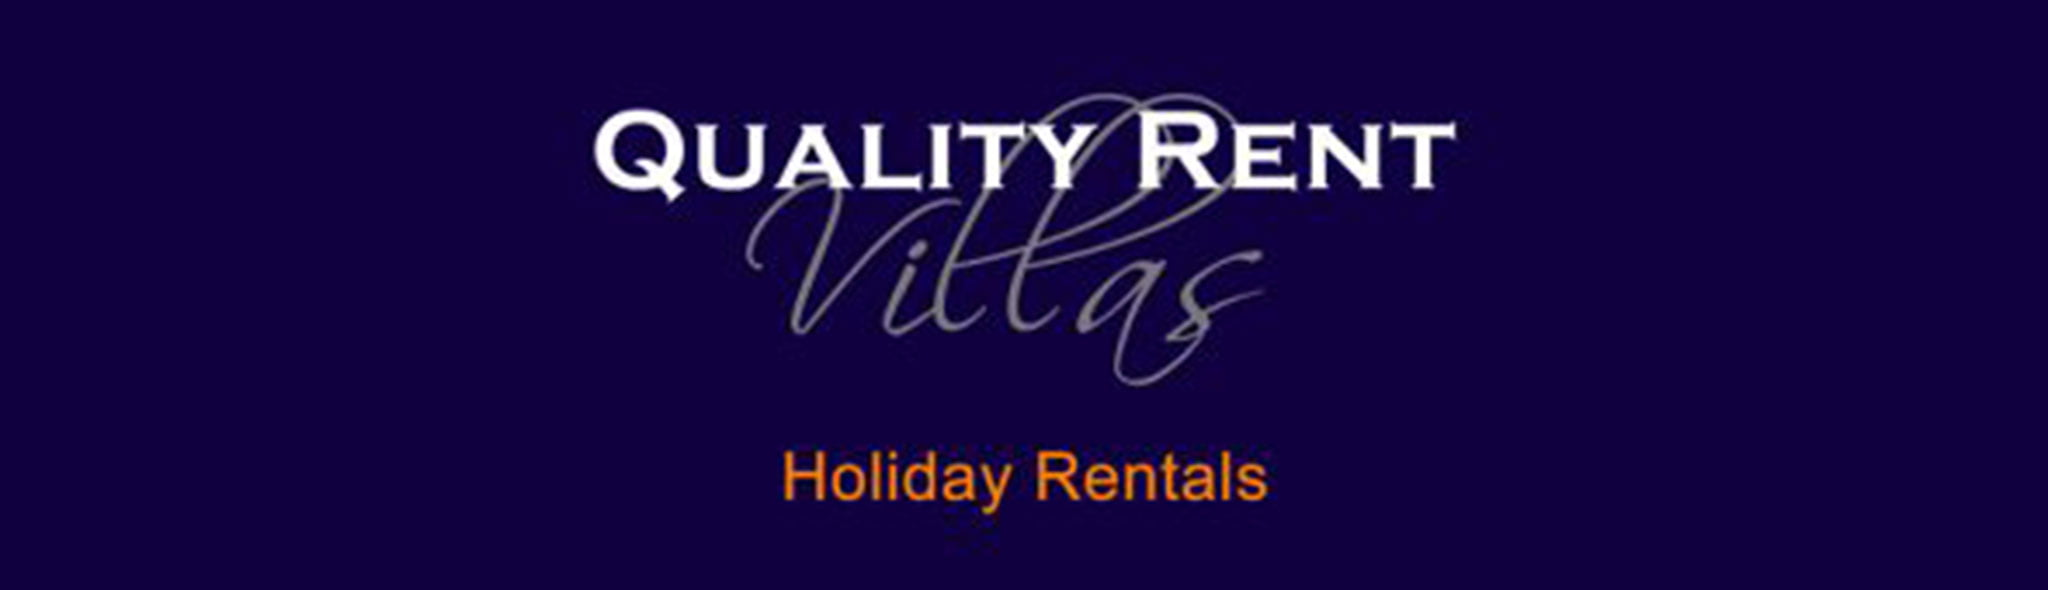 Quality Rent a Villa's logo